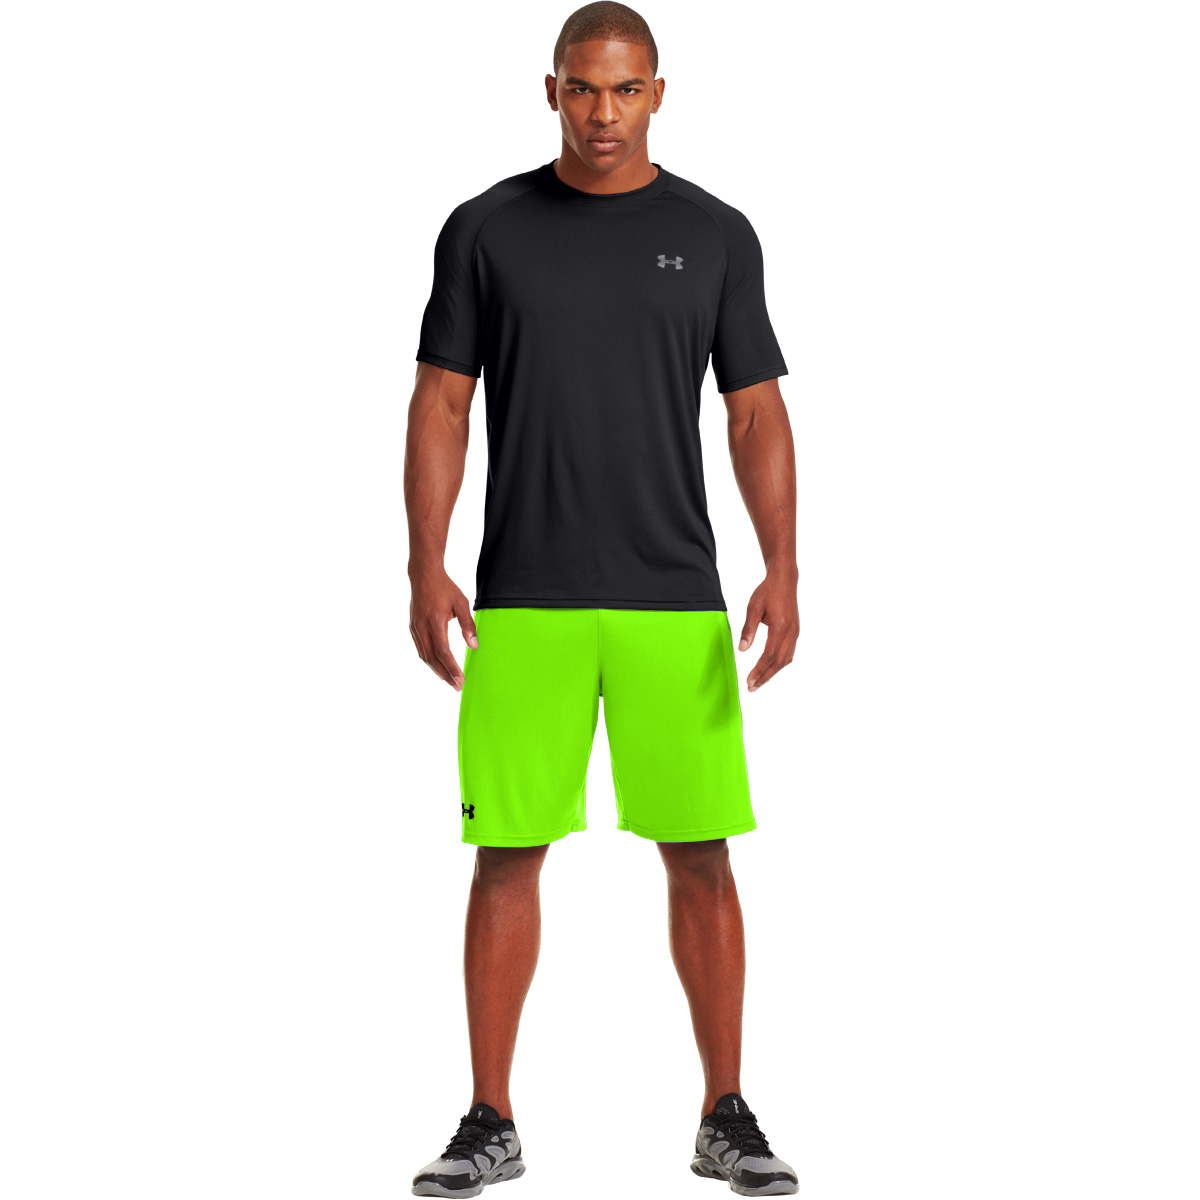 Under-Armour-Mens-UA-Tech-SS-T-Shirt-HeatGear-Training-31-OFF-RRP thumbnail 13